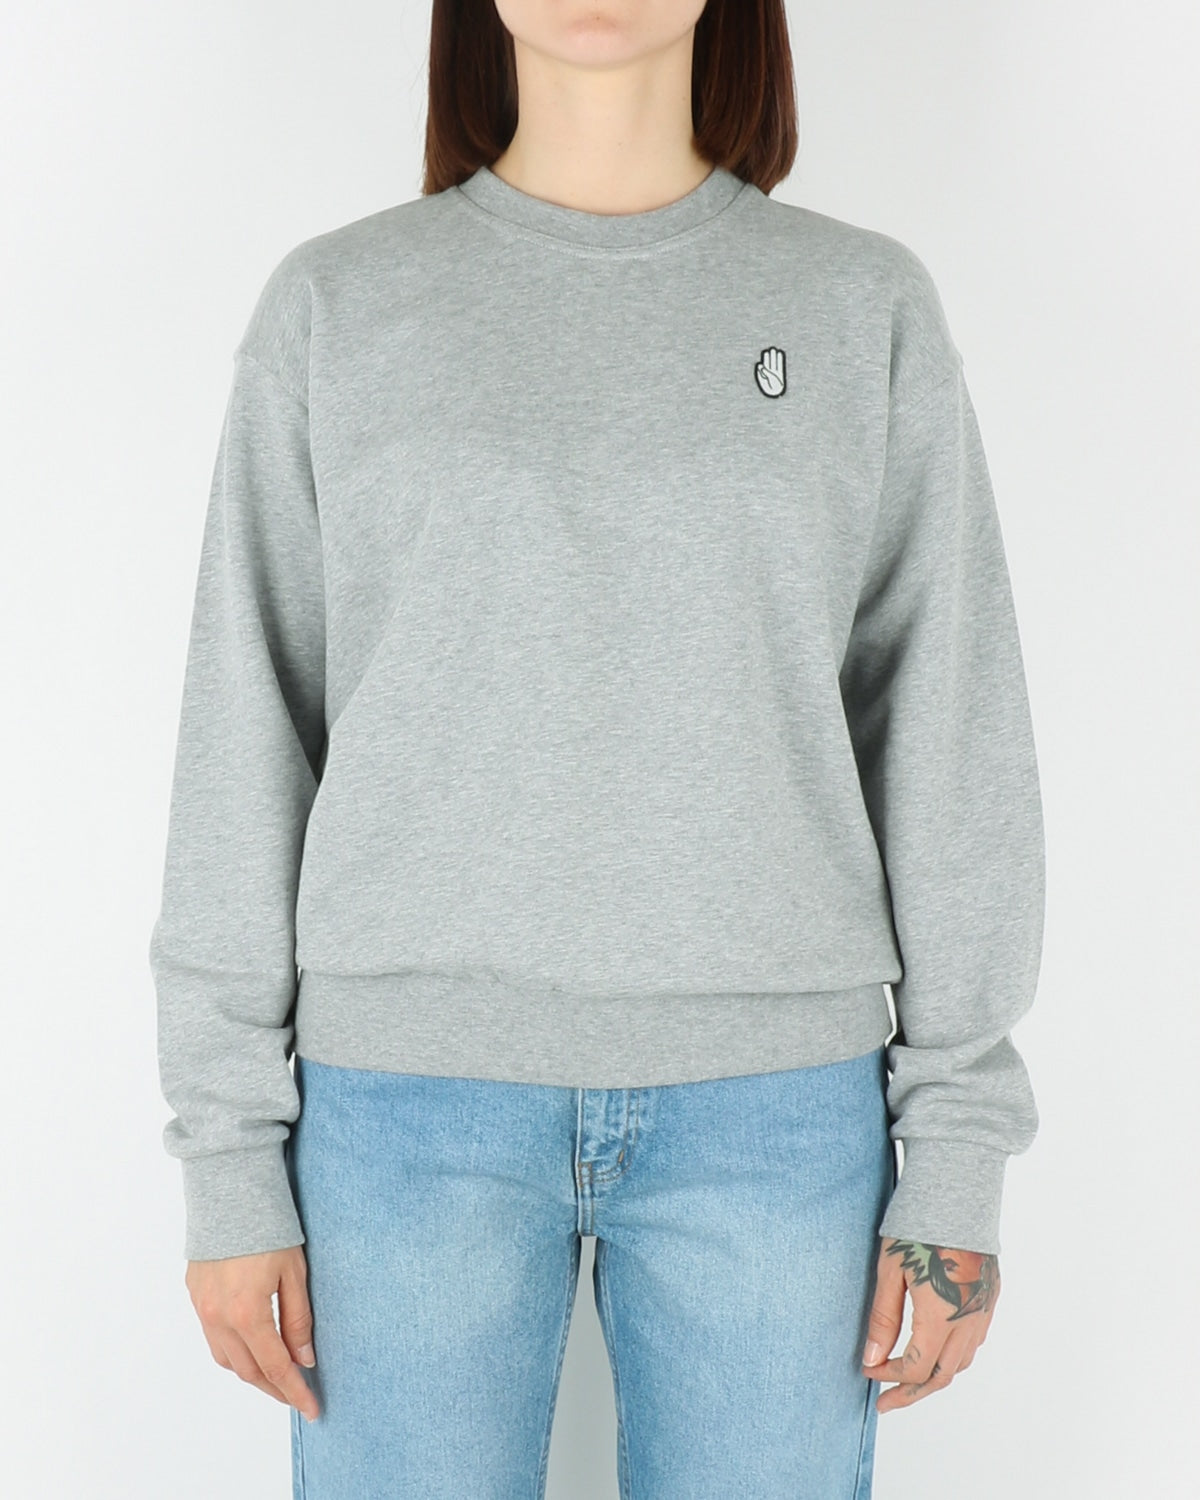 wood wood_tara_sweatshirt_grey melange_view_1_3